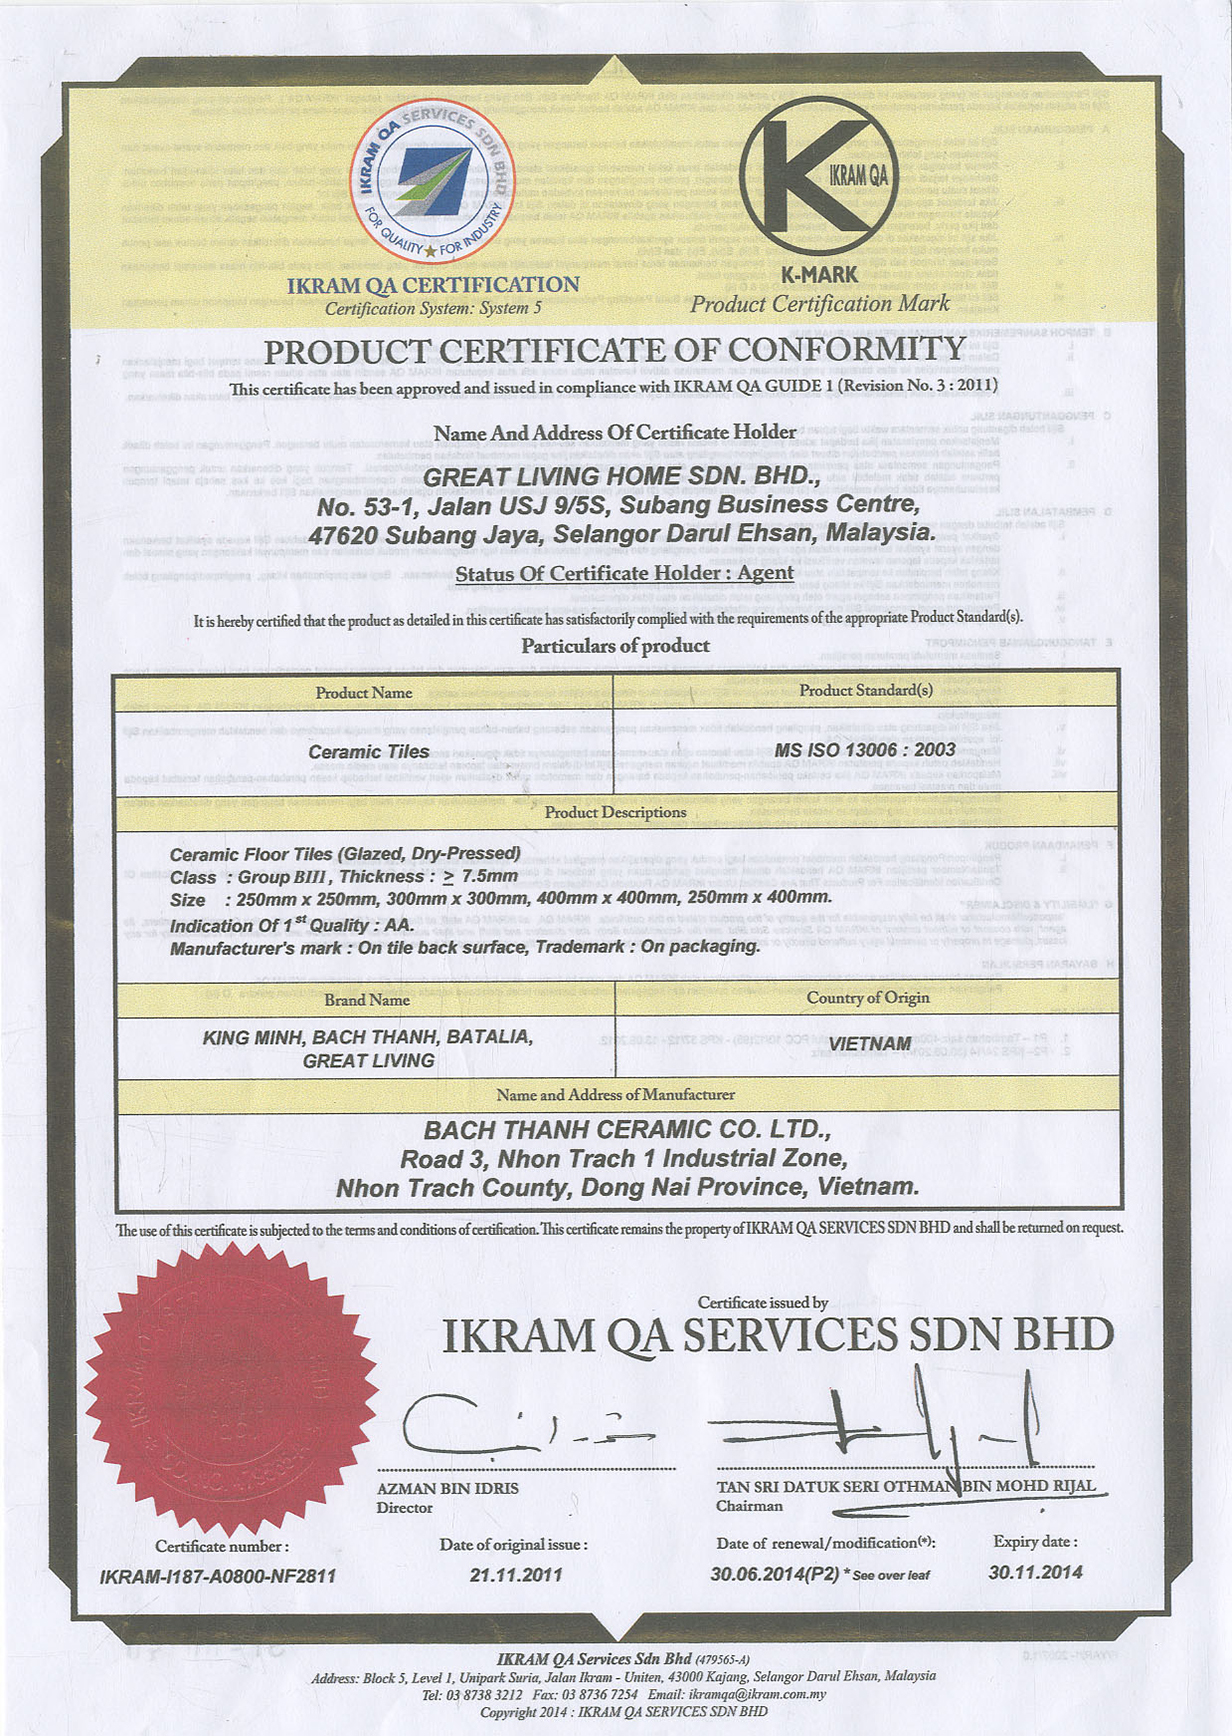 PRODUCT CERTIFICATE OF CONFORMITY